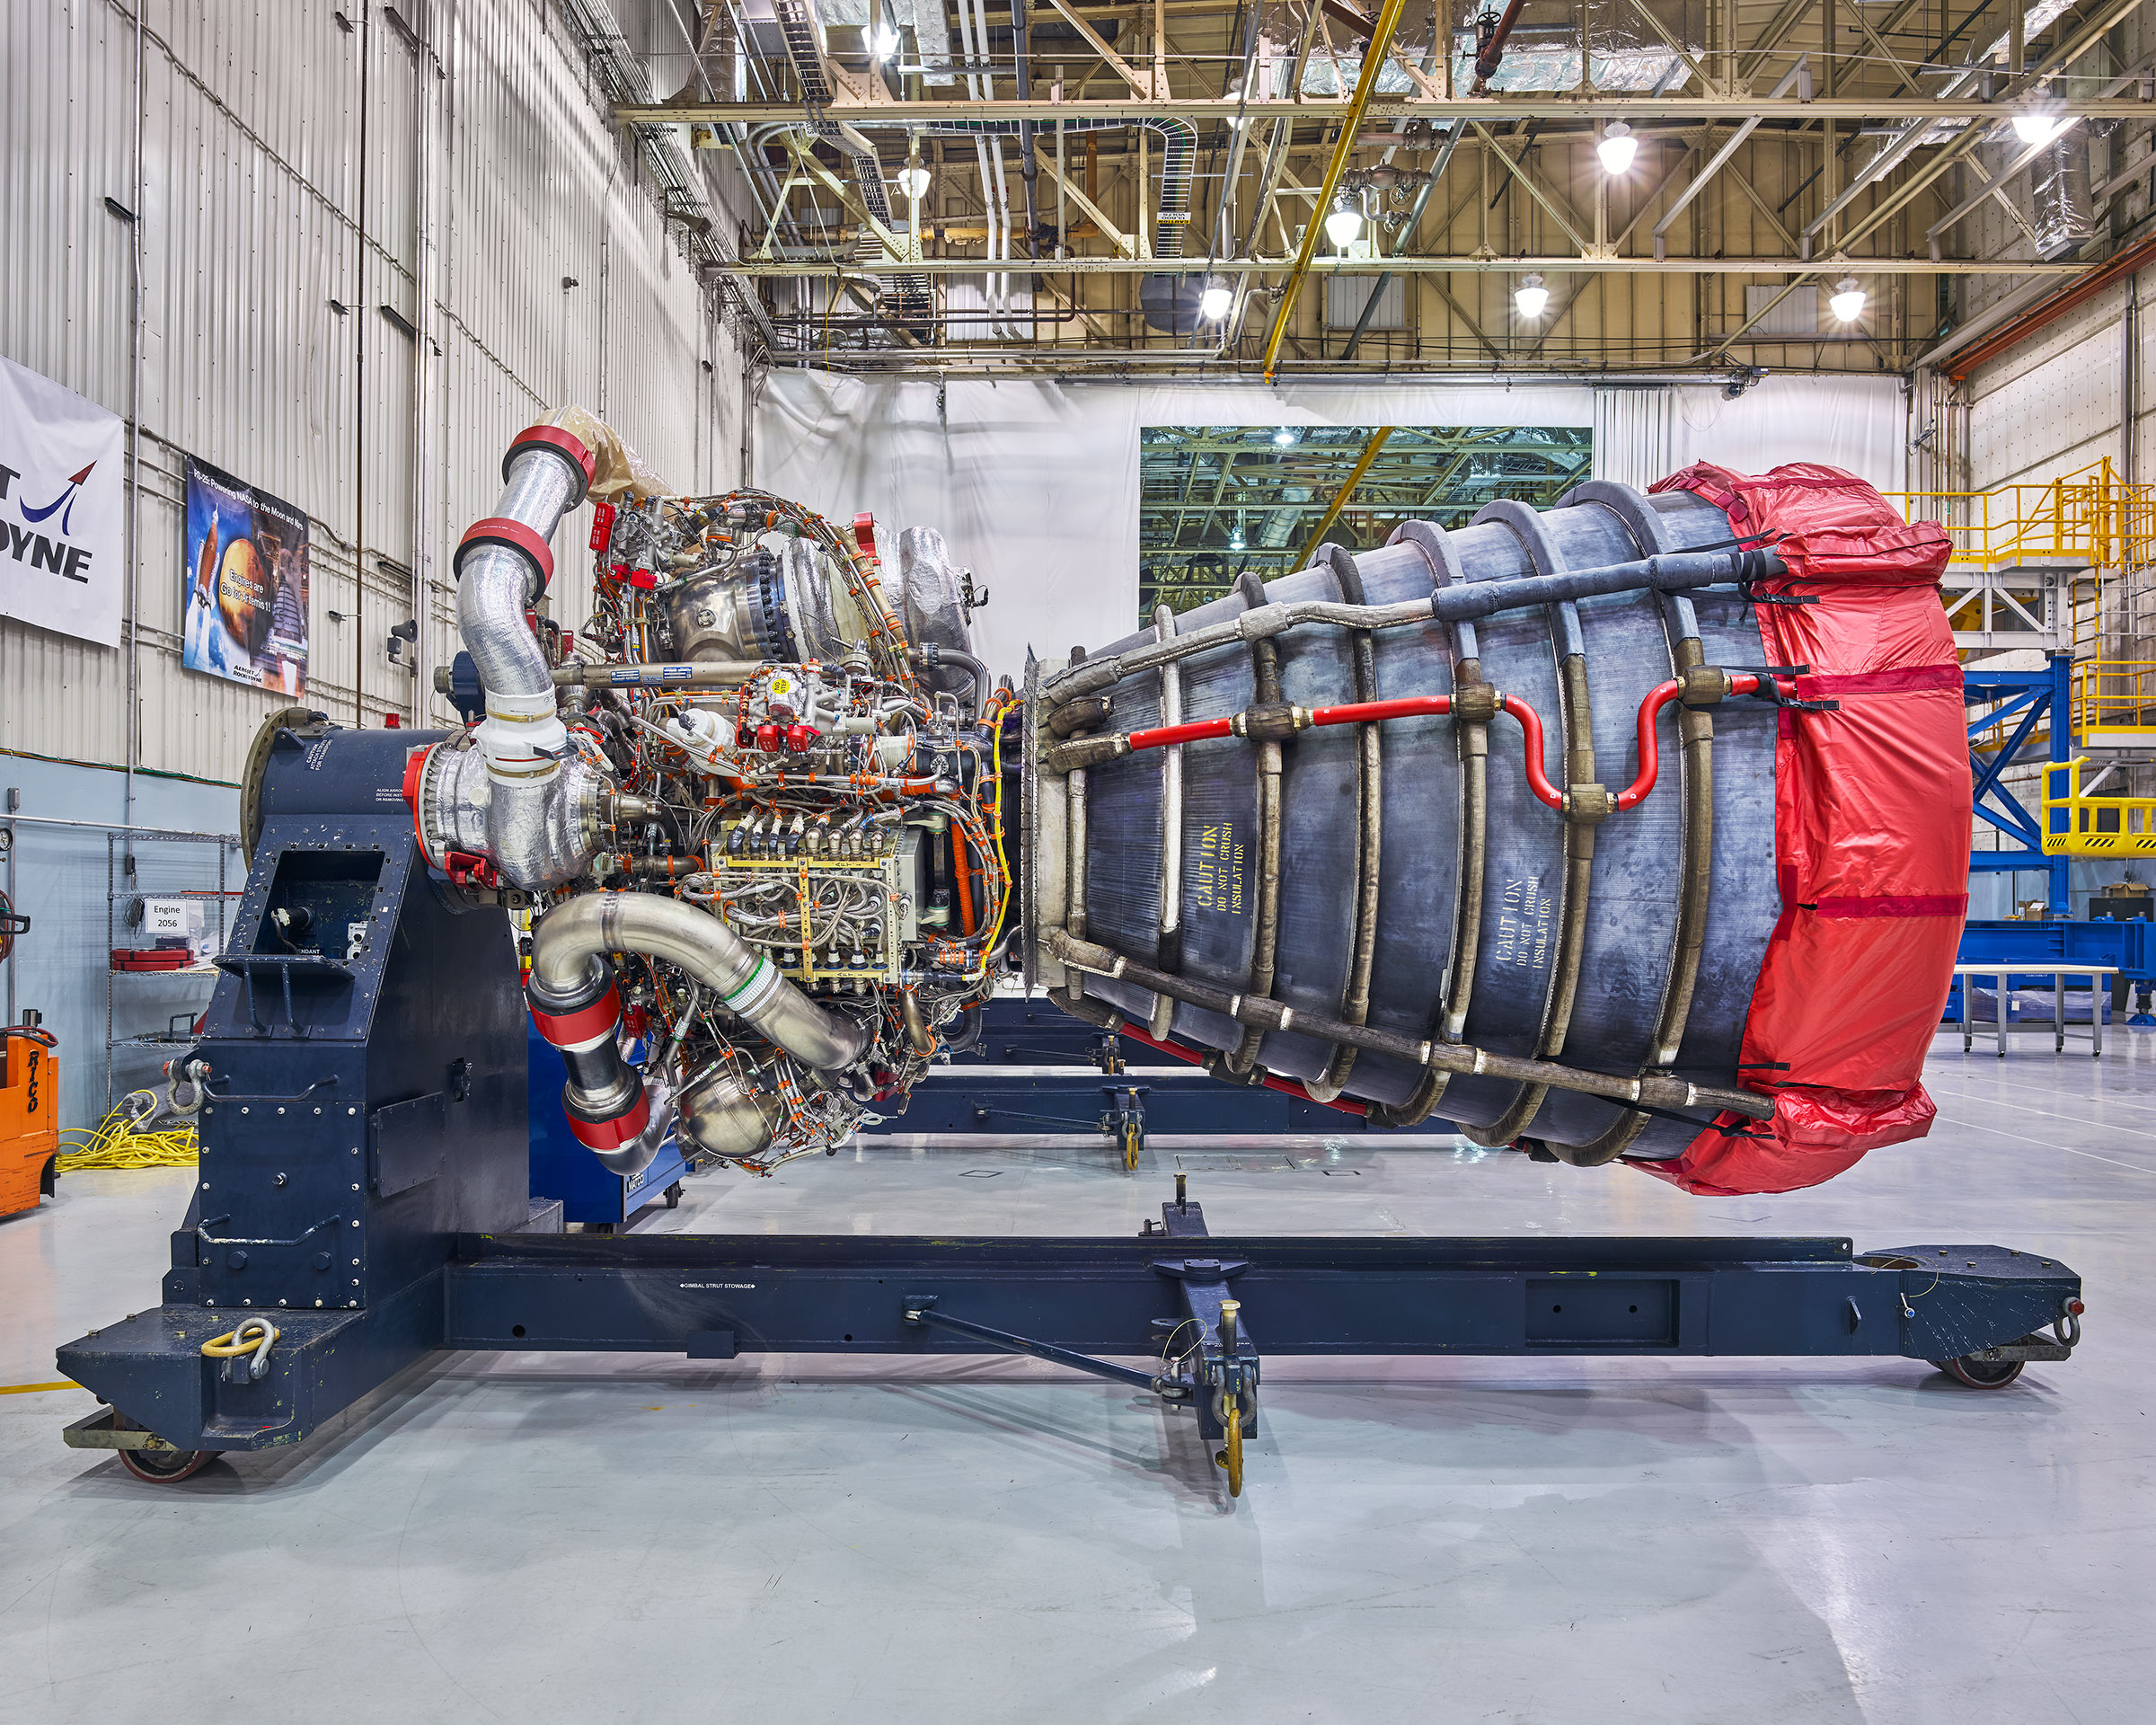 One of the four engines that will be used, along with two solid rocket boosters, to launch NASA's moon rocket and ascend it into space